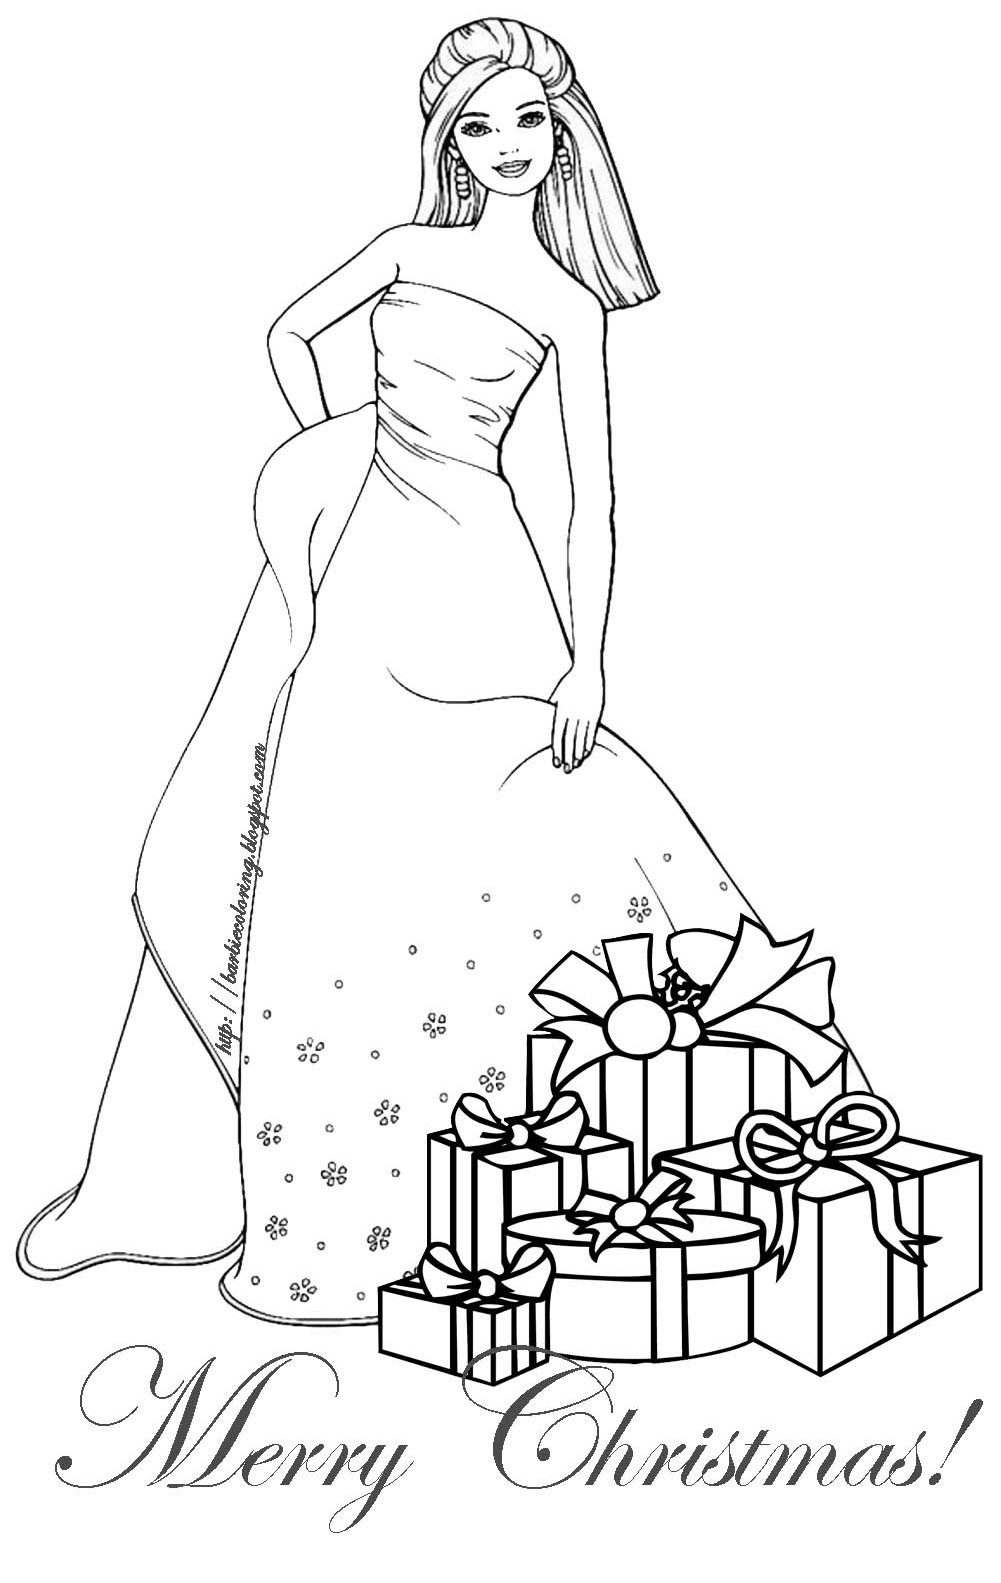 printable barbie family coloring pages my family fun barbie and friends printable family barbie coloring pages